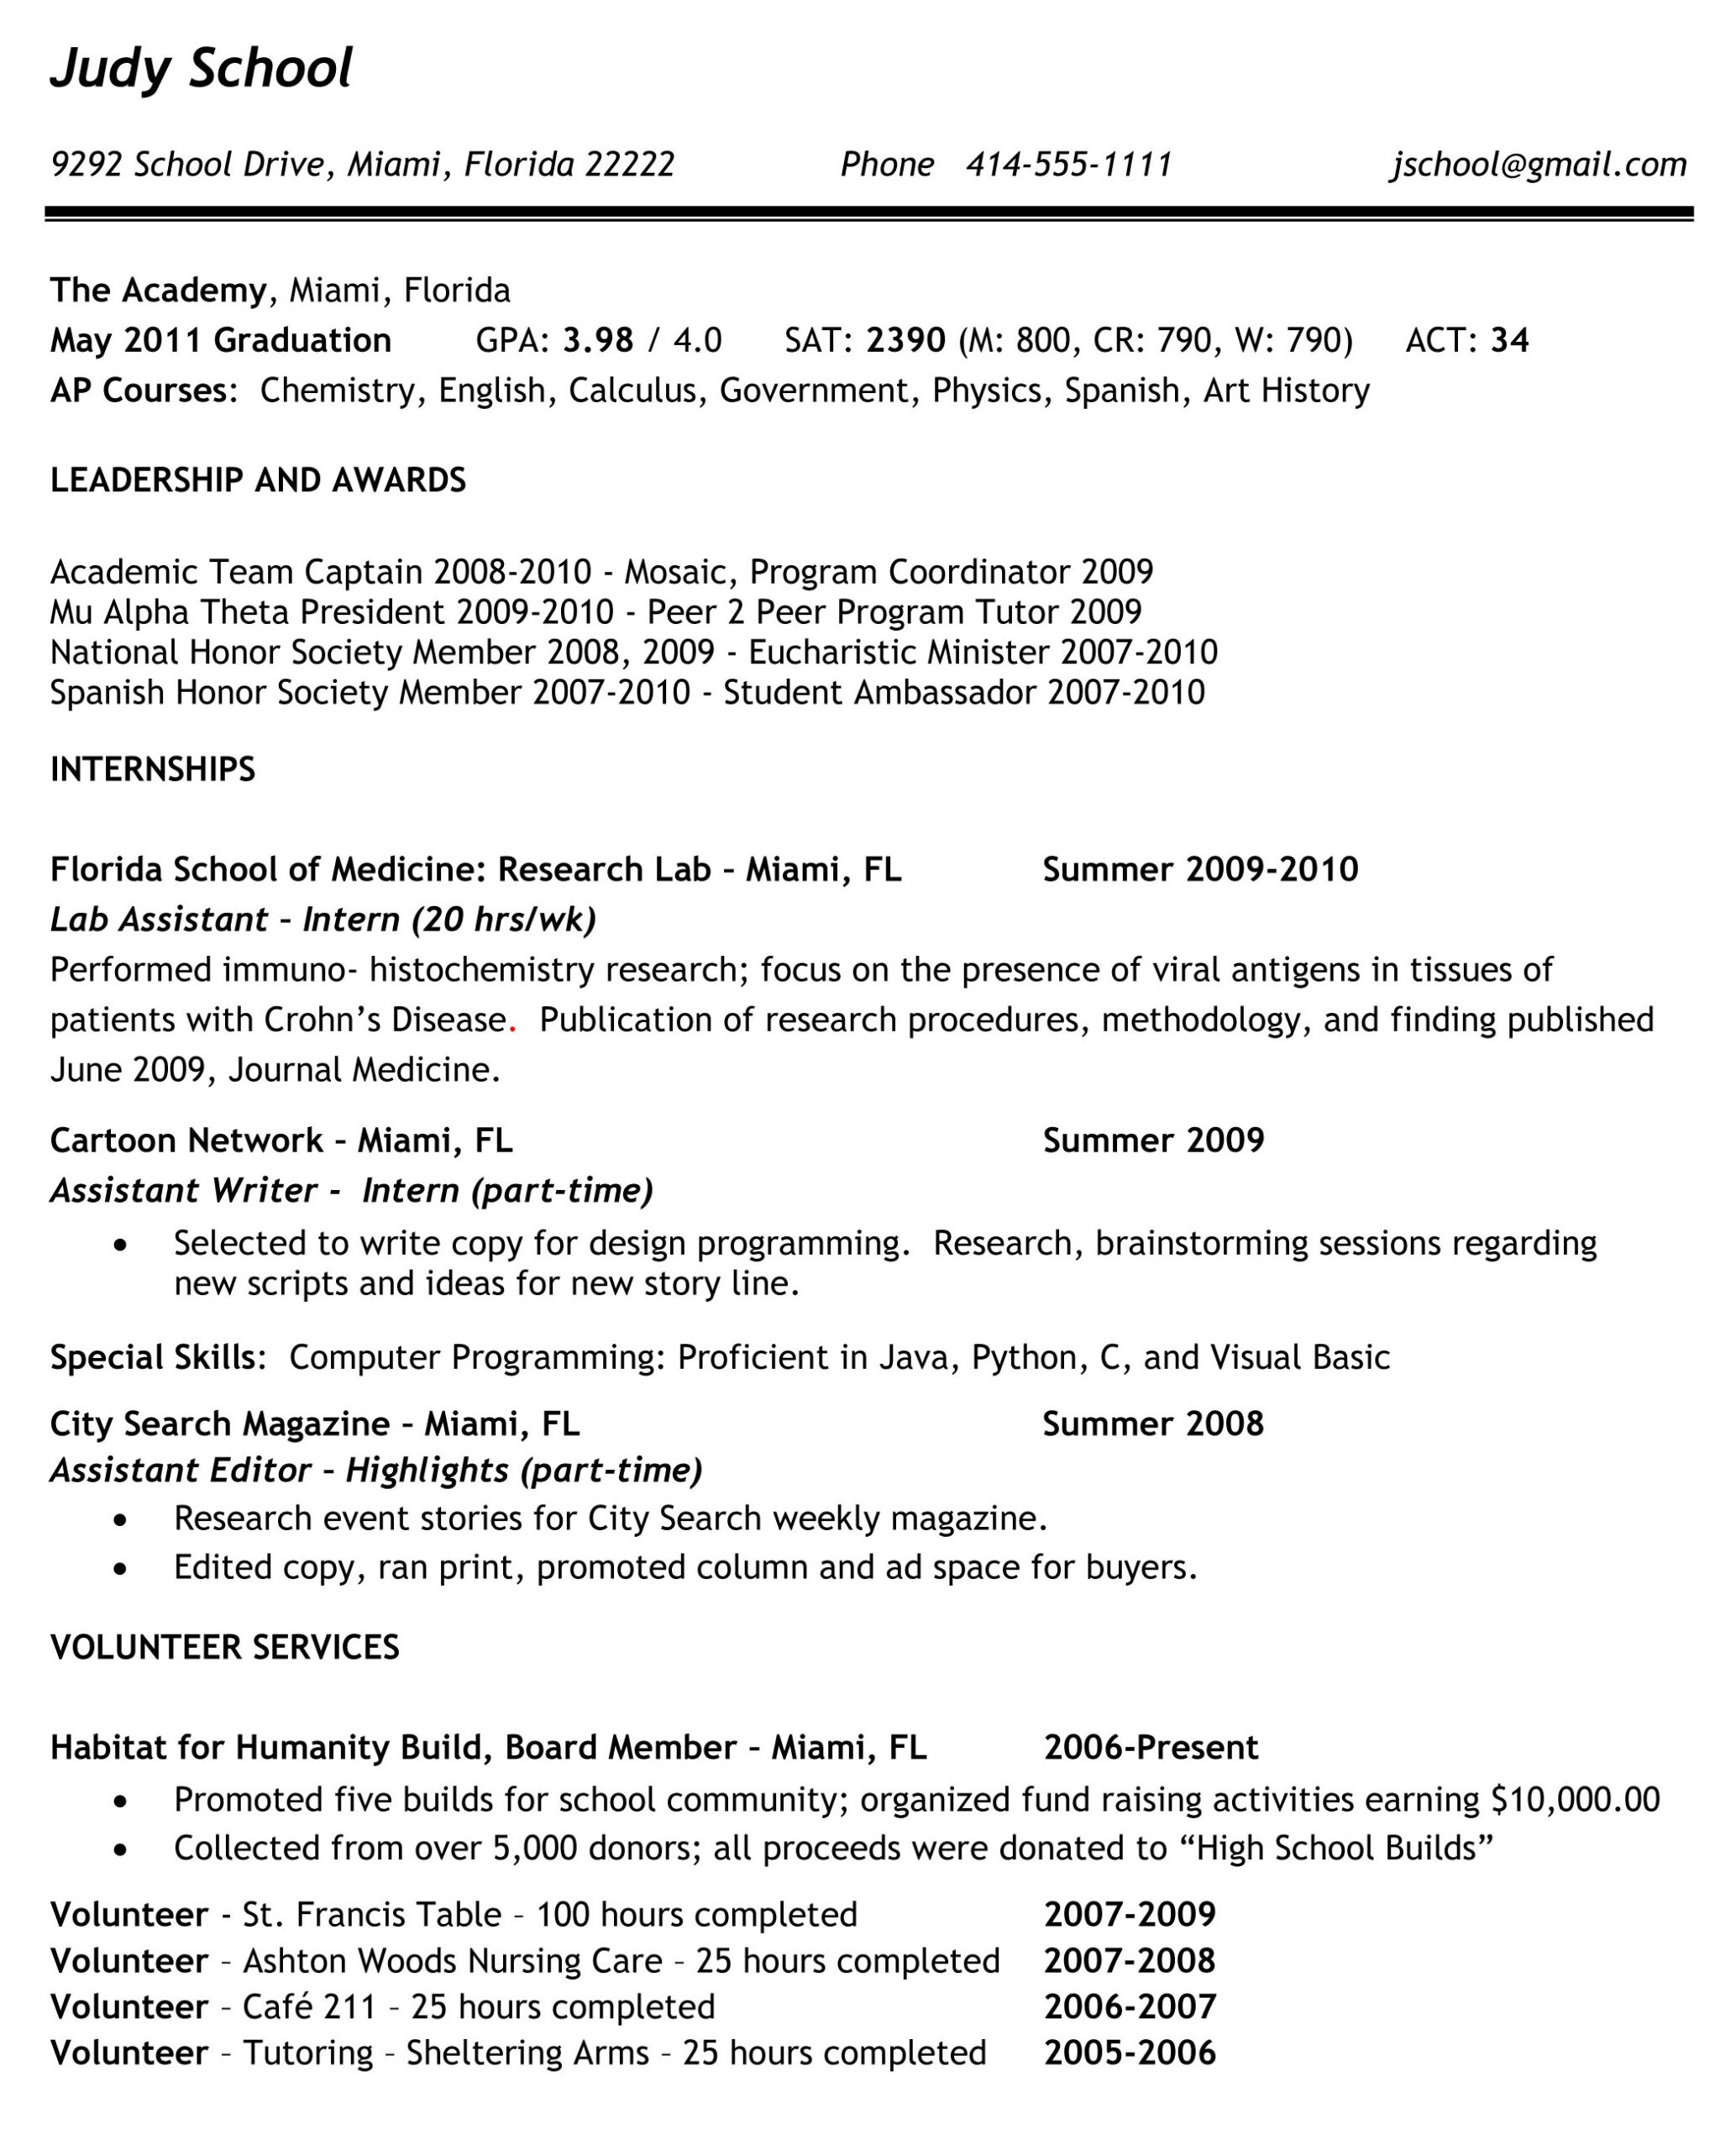 einstein essay for the aarau school written in french help writing term paper Resume Sample College Application Resume For High School Seniors